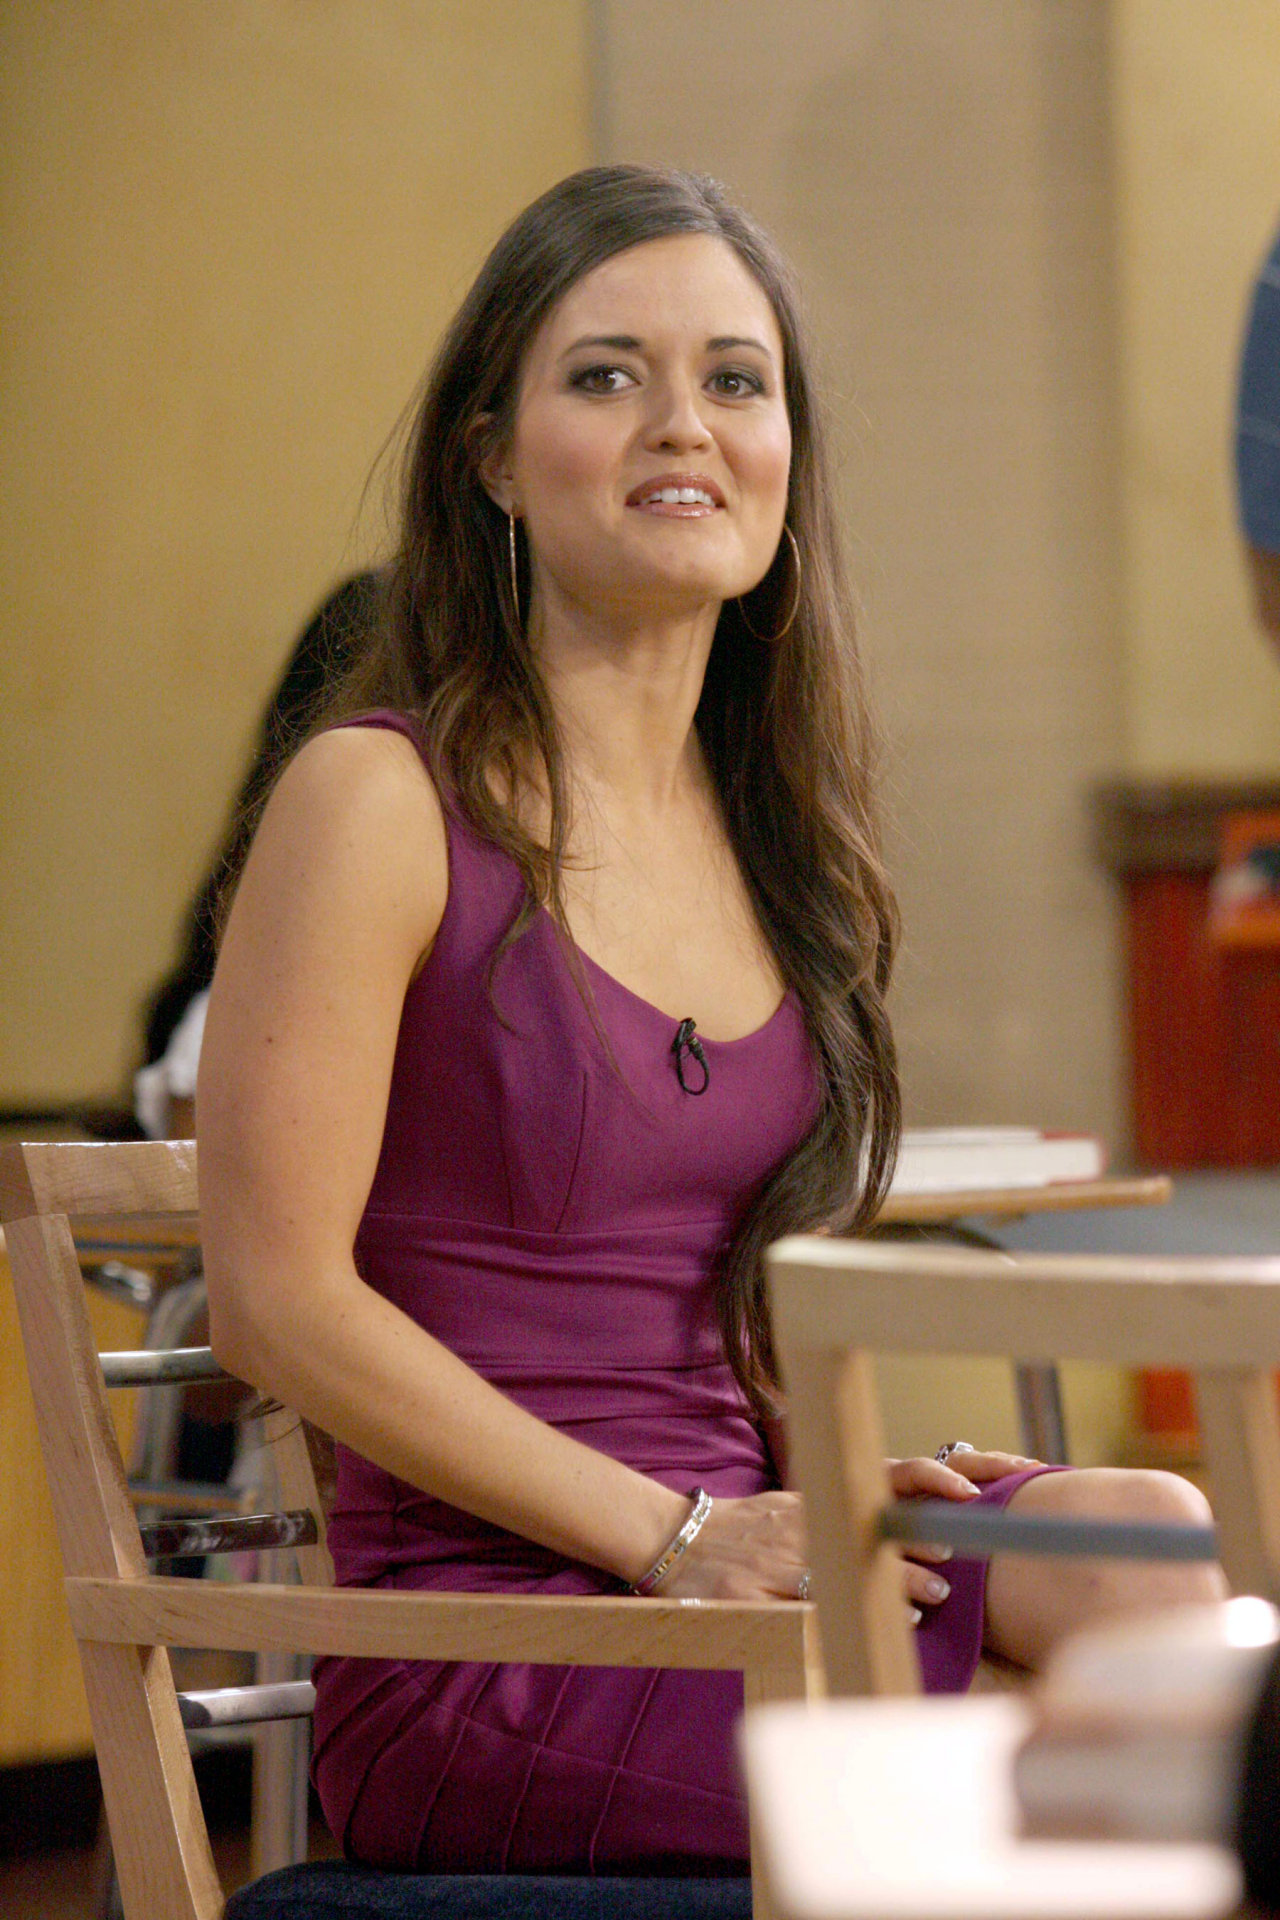 Danica McKellar leaked wallpapers